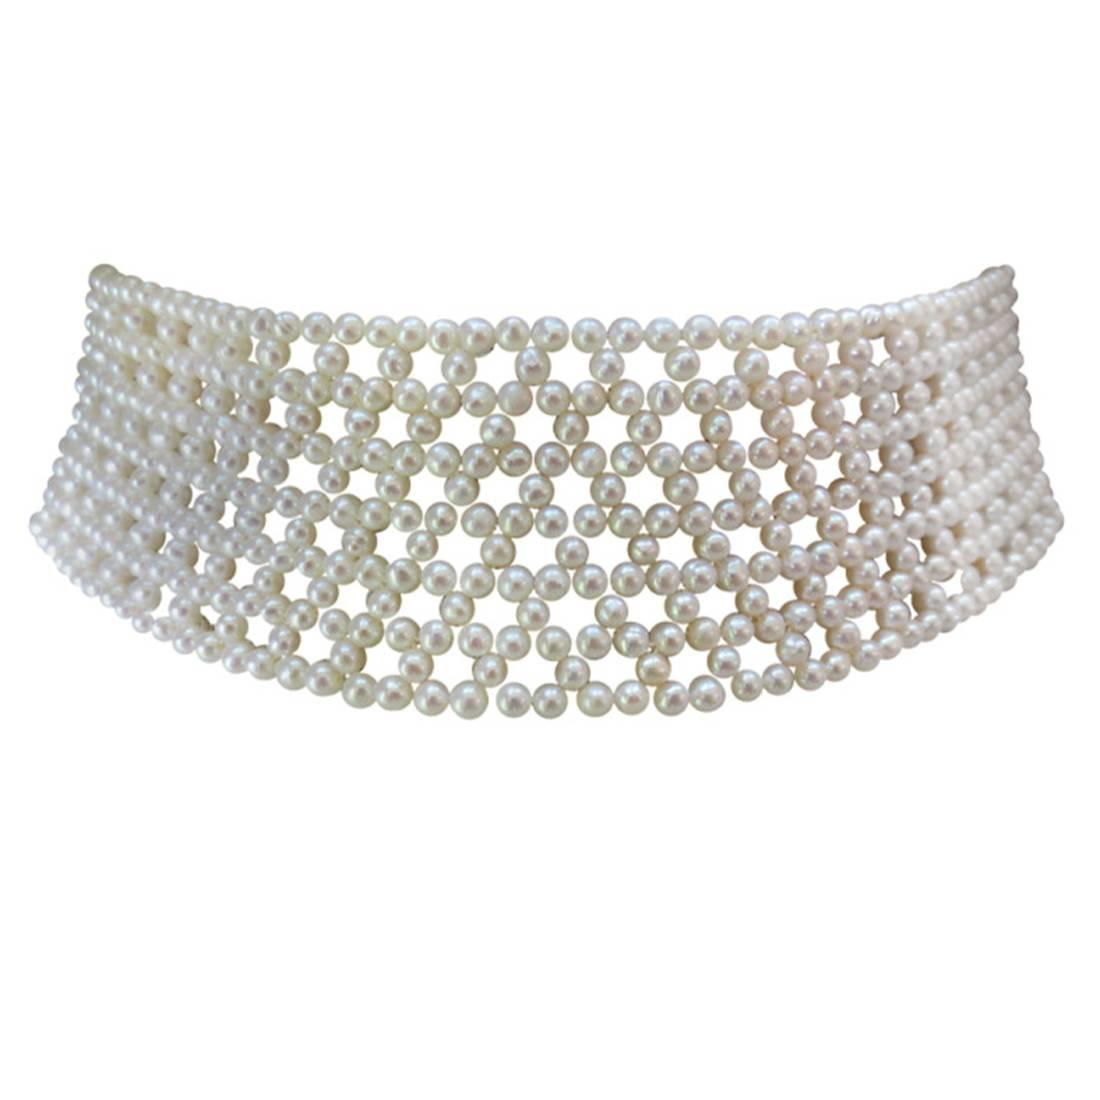 Woven Pearl Multistranded Bridal Choker With Sliding Gold Clasp